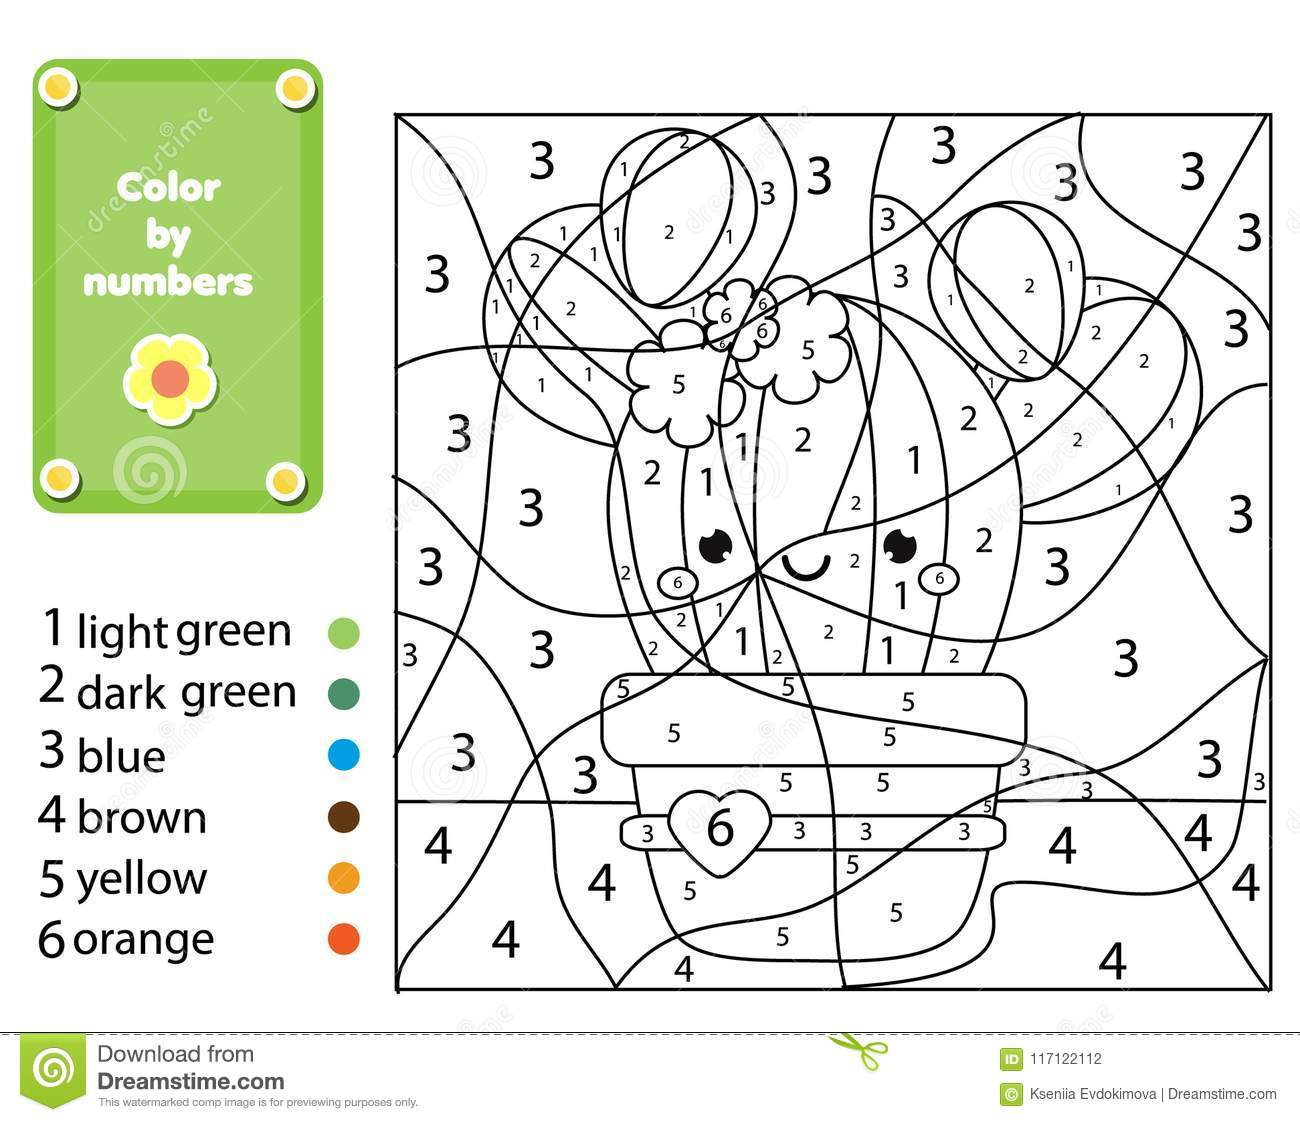 Children Educational Game Coloring Page With Cactus Plant Color By Numbers Printable Activity